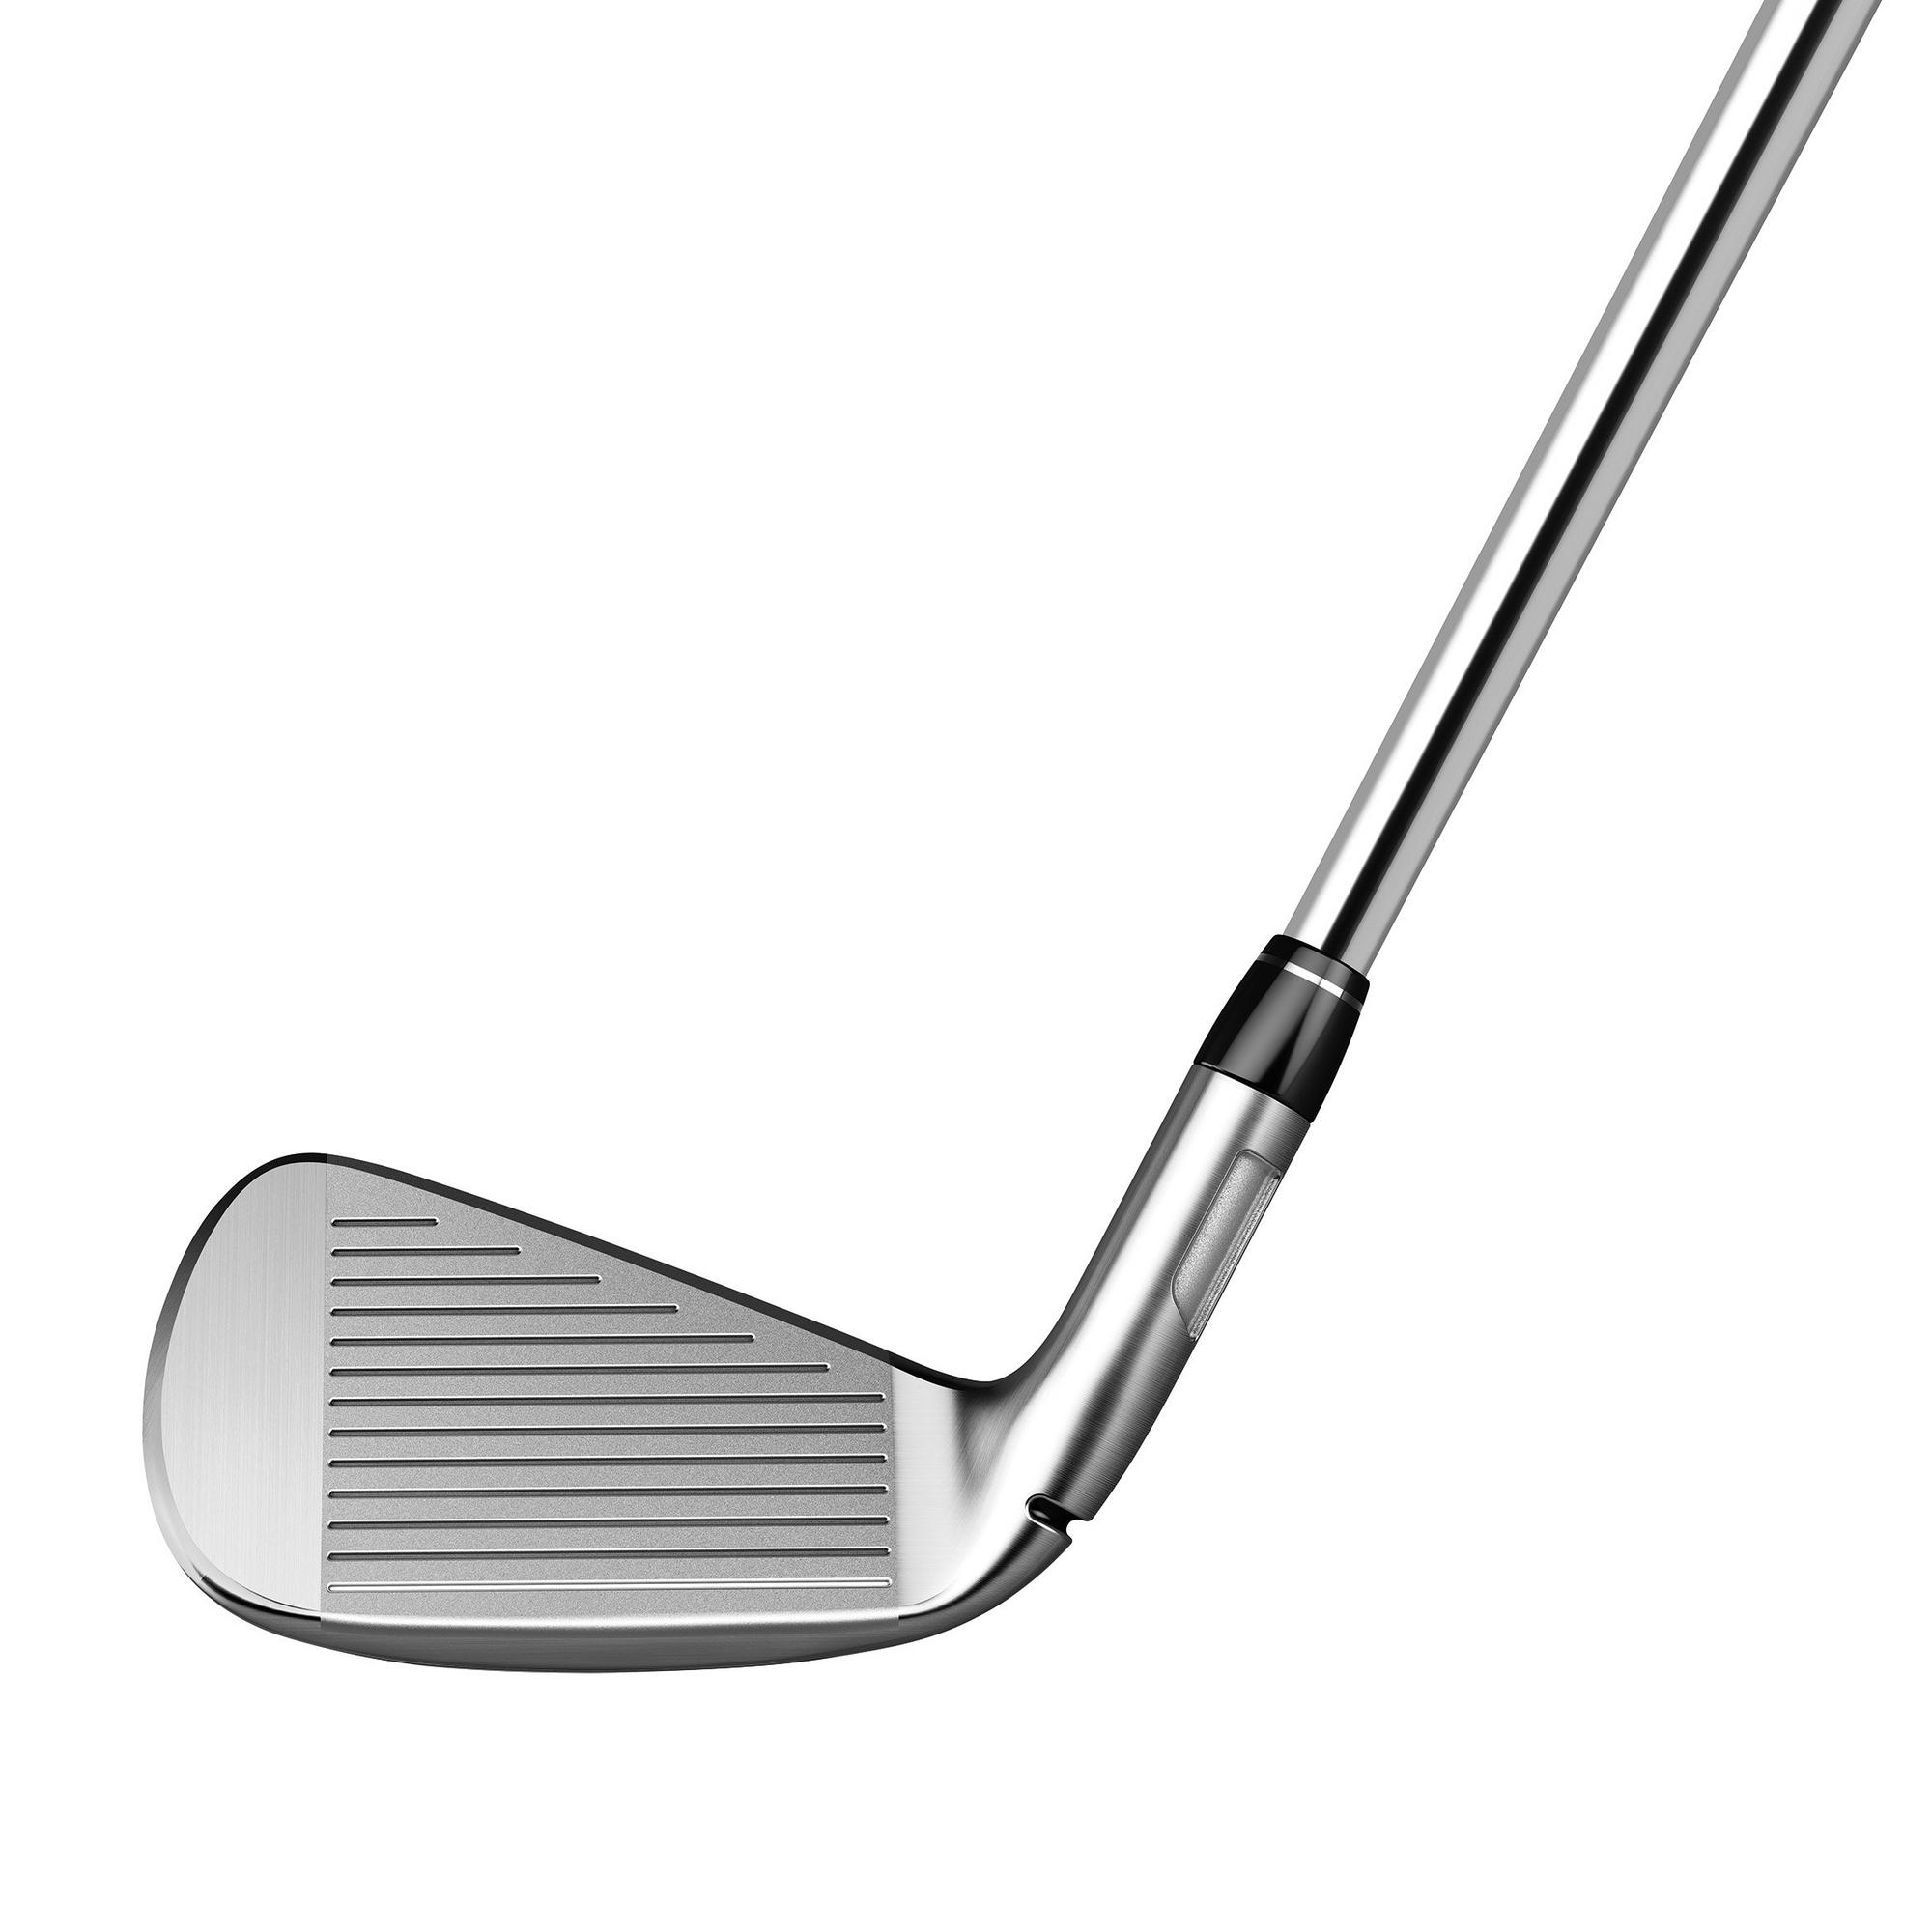 M5 4-PW Iron Set with Steel Shafts